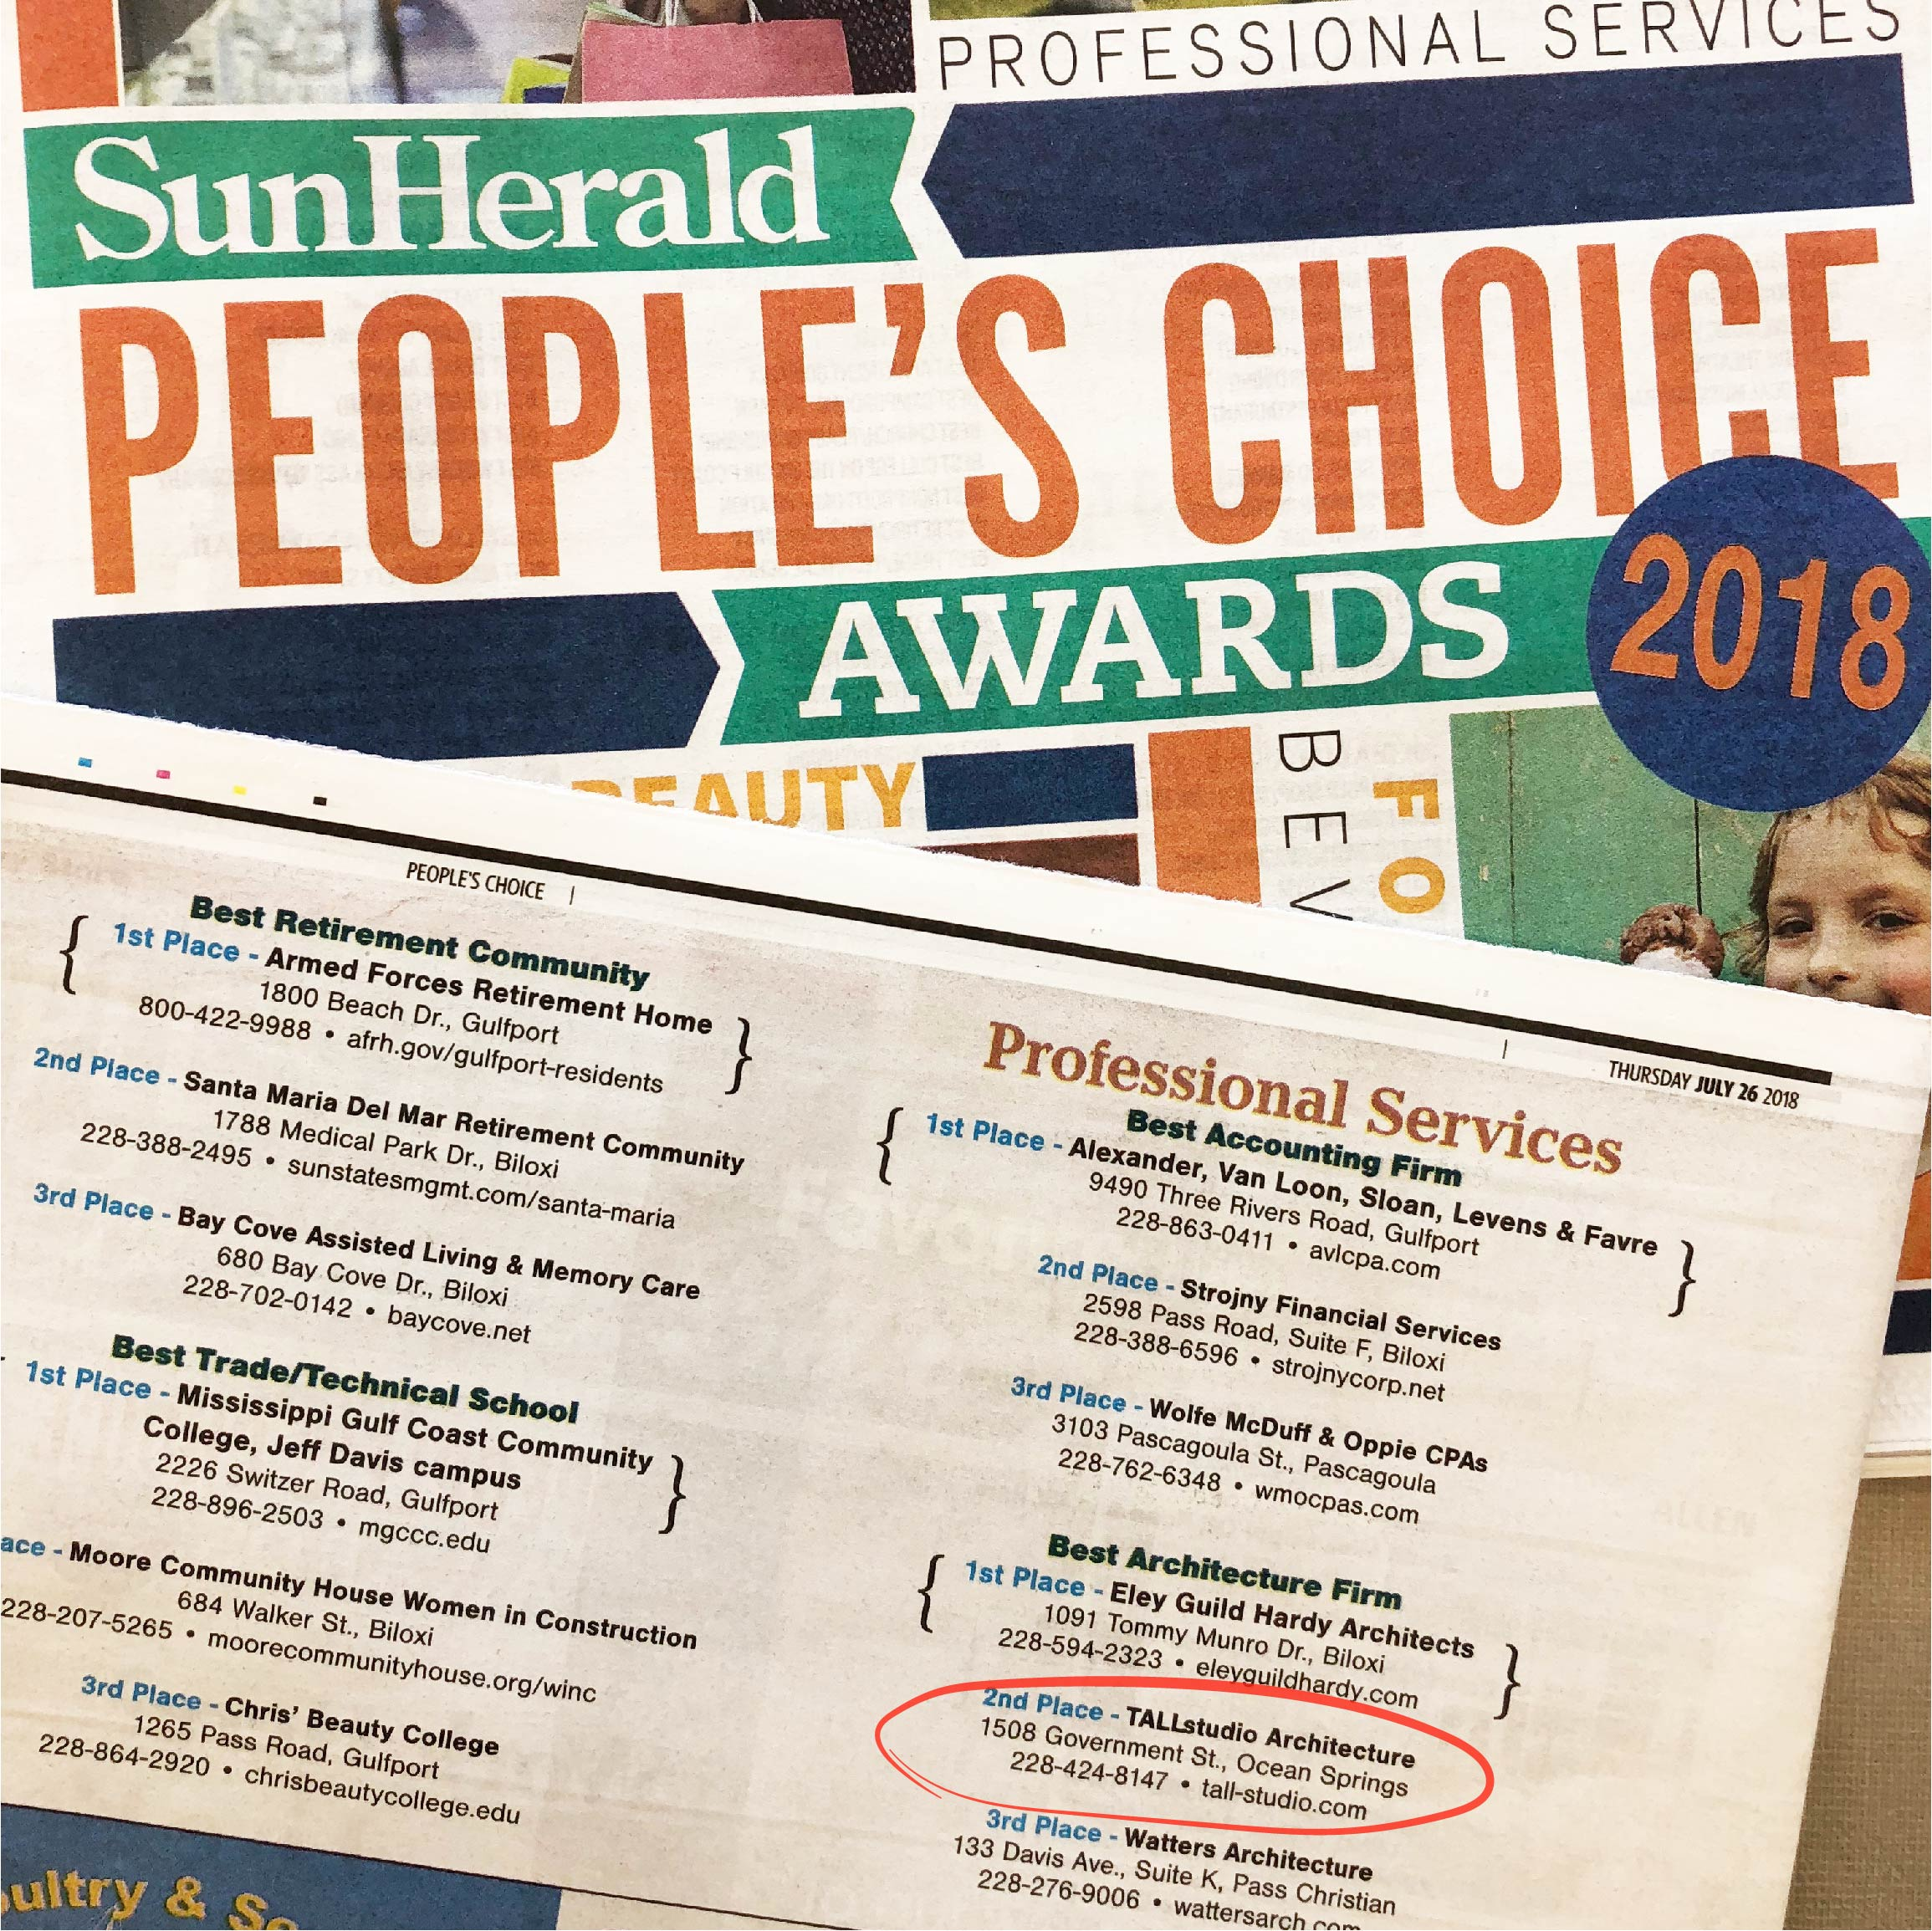 "Tall Architects places second for ""Best Architecture Firm"" in the Sun Herald's People's Choice Awards 2018!"